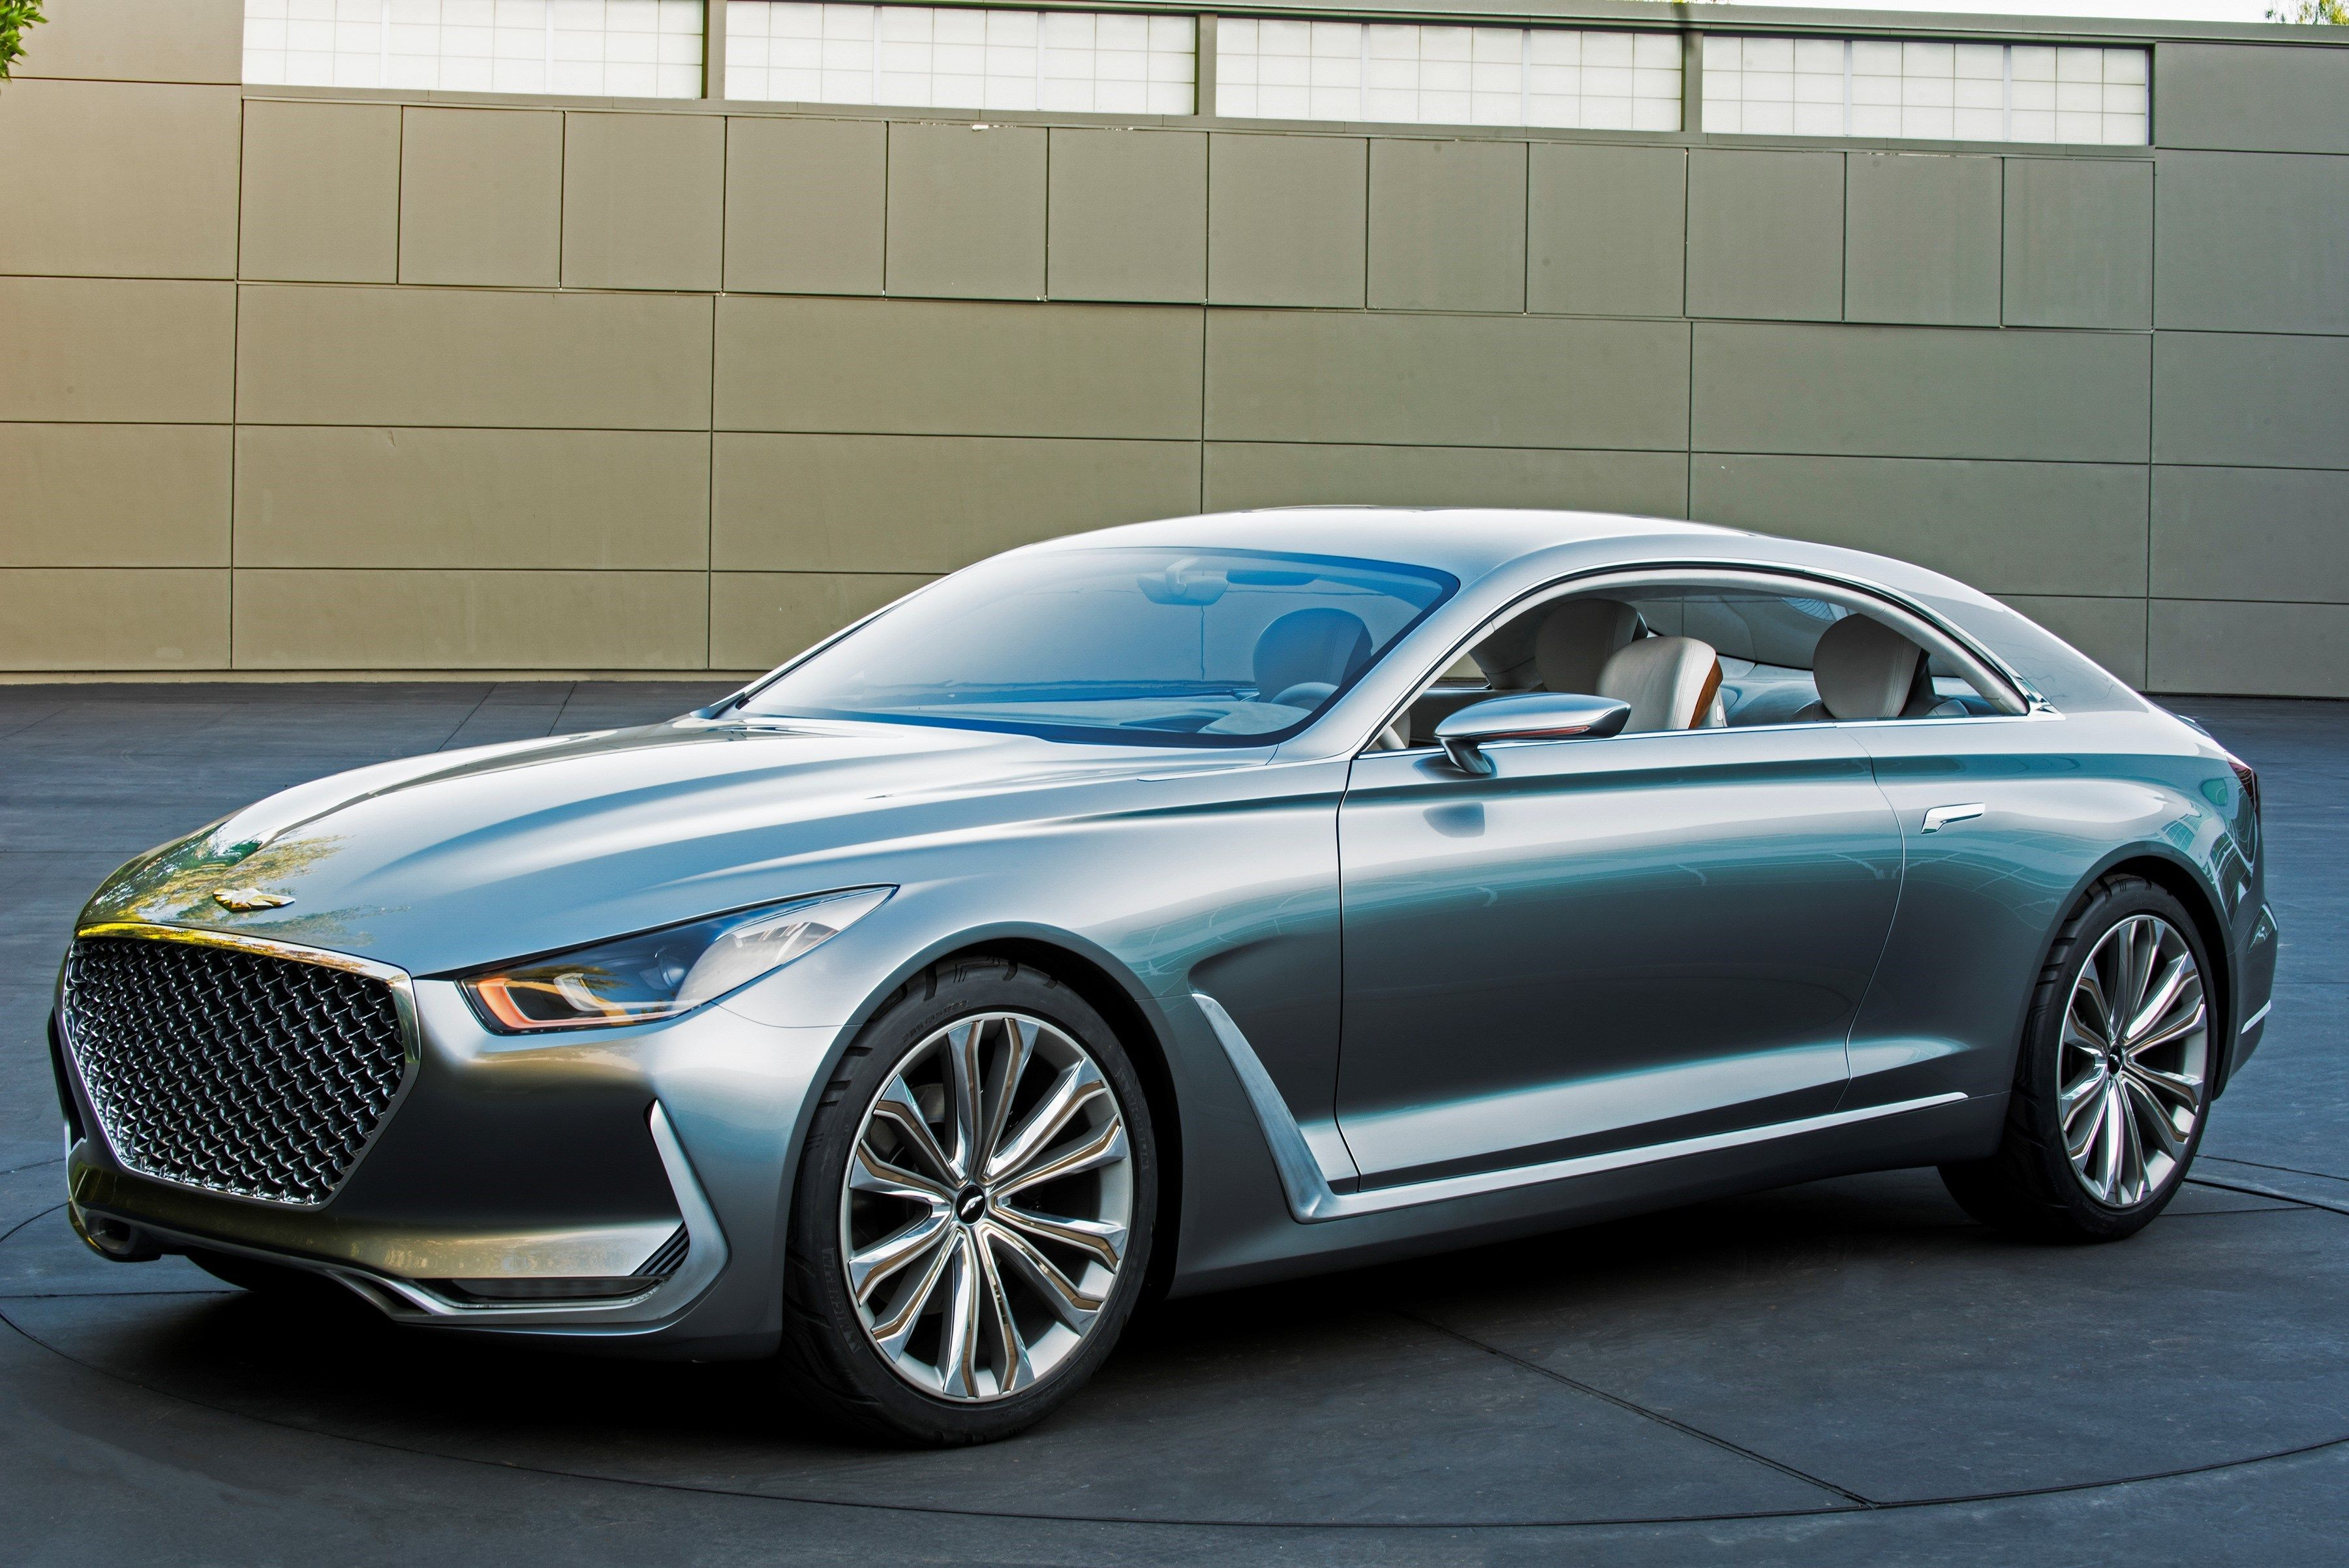 Hyundai's Vision G Coupe is Bringing Chivalry Back With Understated